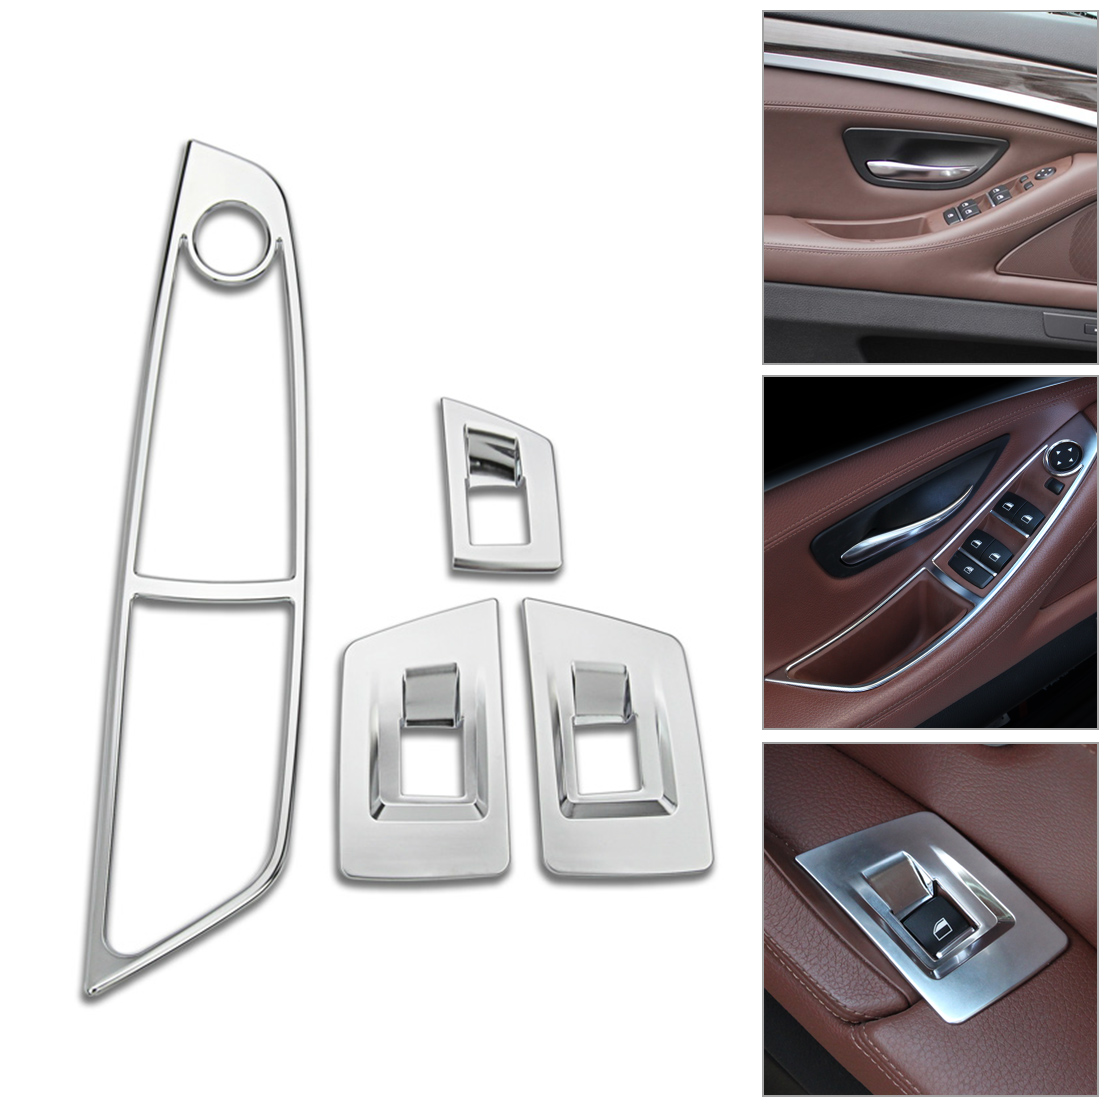 4pcs door window switch panel trim for bmw f10 5 series 520d 525i 2011 2015 2016 ebay. Black Bedroom Furniture Sets. Home Design Ideas